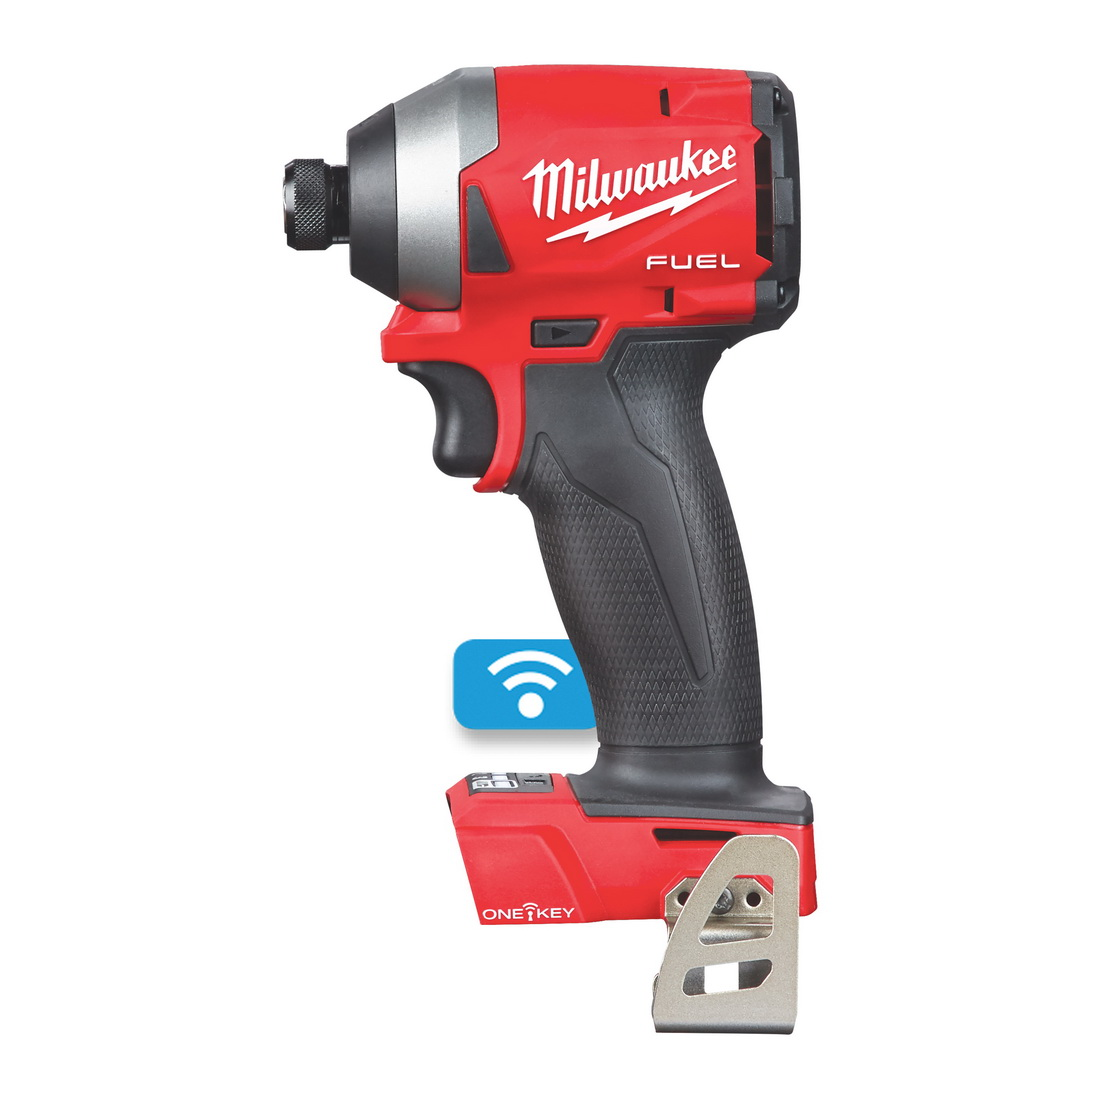 M18 FUEL ONE-KEY Impact Driver 1/4 inch Hex